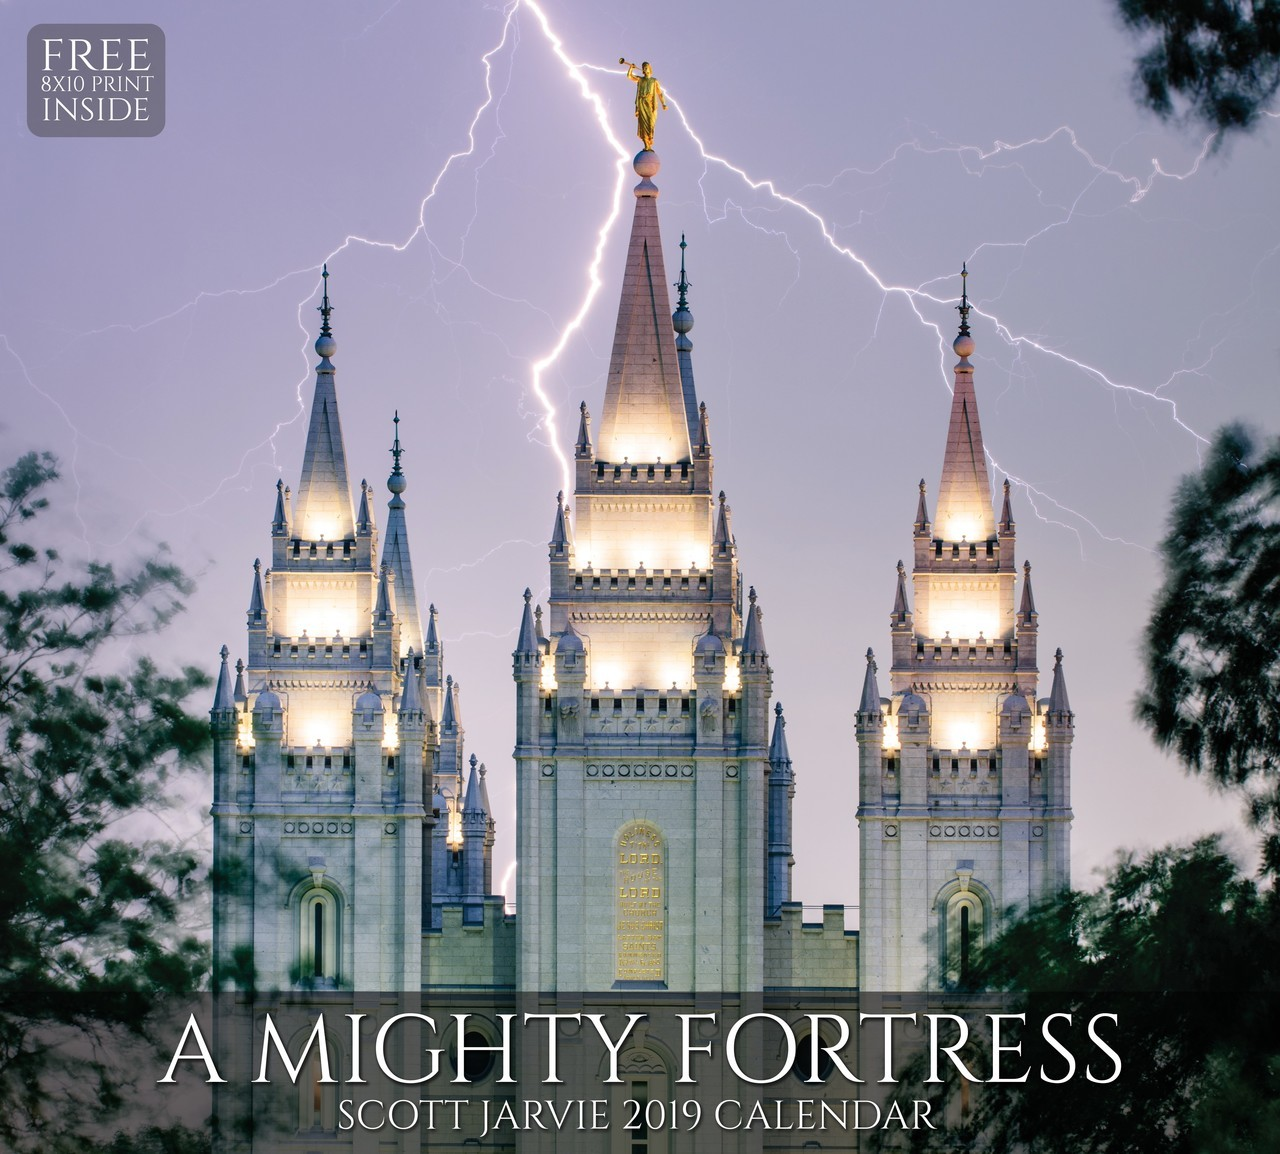 AF - Calendar - 2019 Scott Jarvie Calendar - A Mighty Fortress Temple (Free 8X10 Print Inside) <BR>2019年 スコット・ジャビー カレンダー A Mighty Fortress Temple【壁掛け】